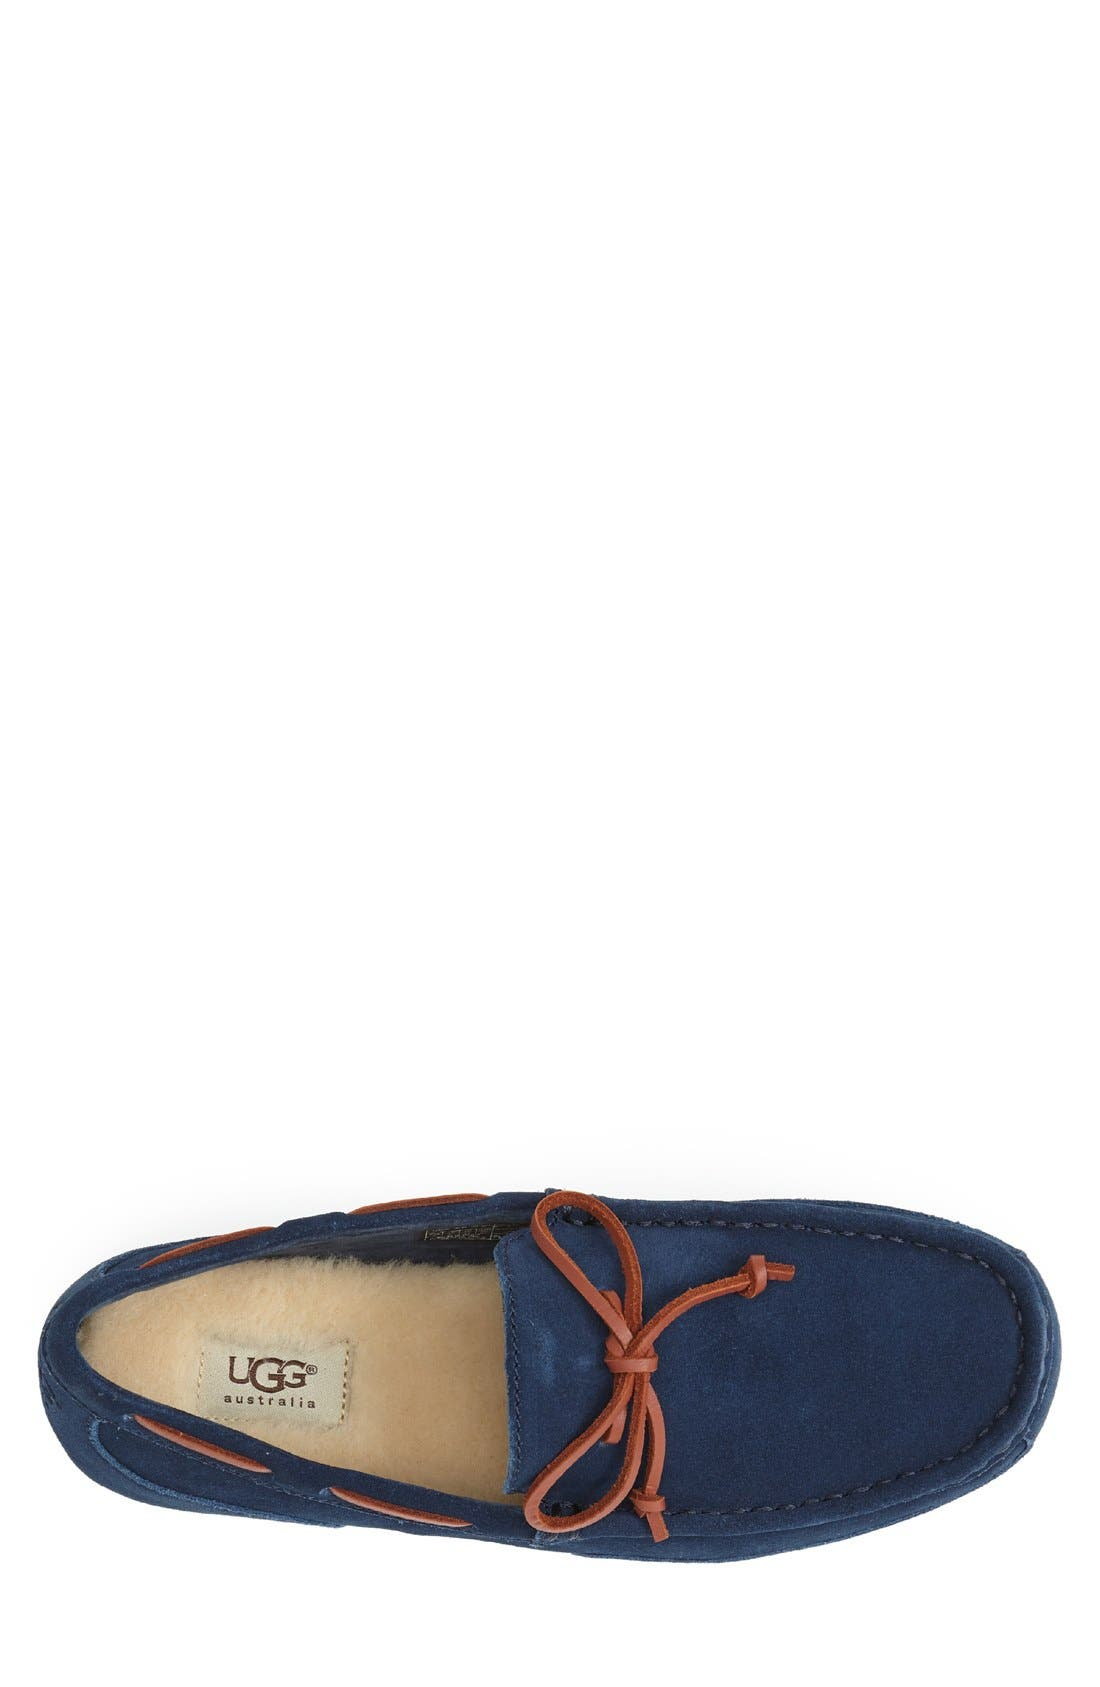 'Chester' Driving Loafer,                             Alternate thumbnail 26, color,